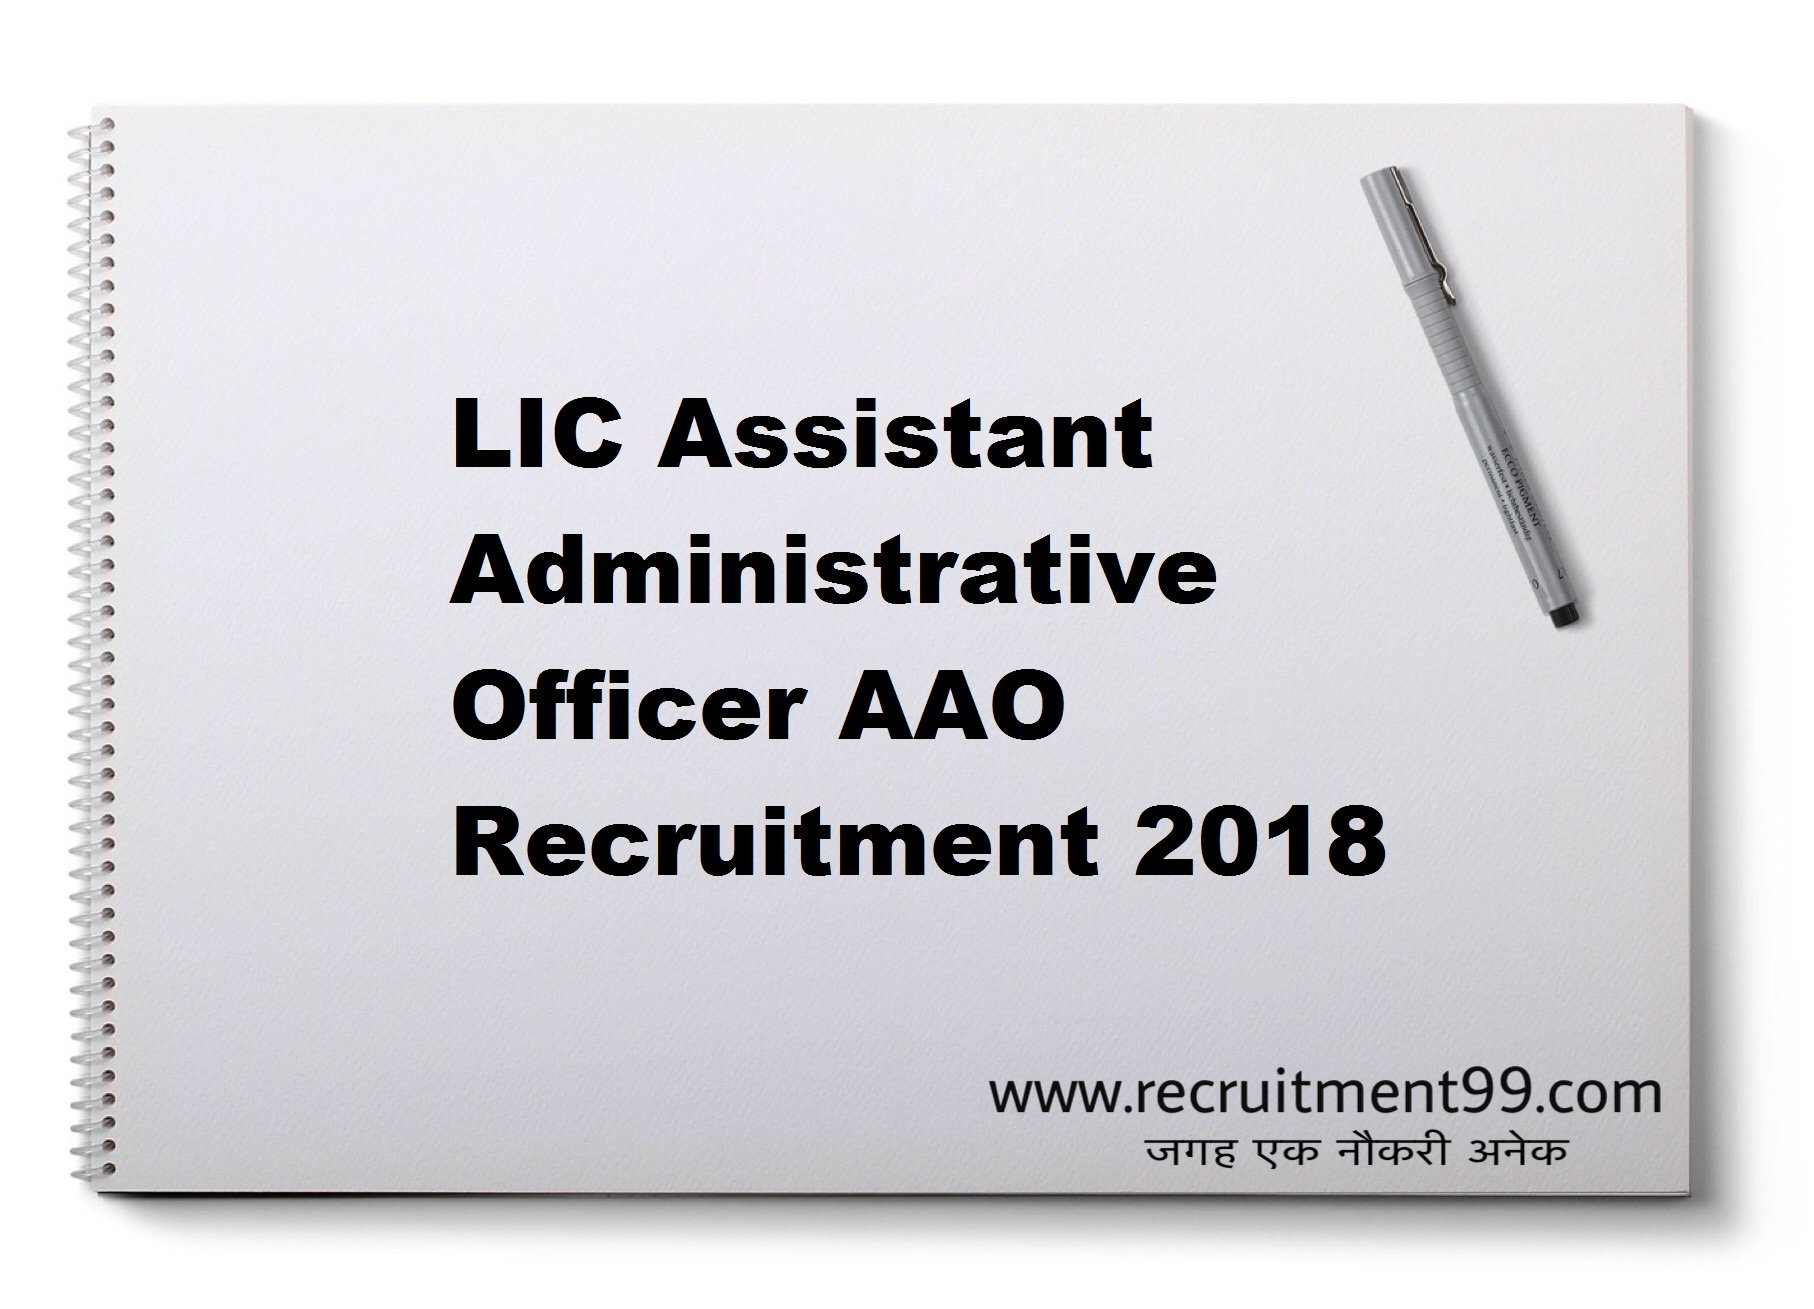 LIC Assistant Administrative Officer AAO Recruitment Admit Card Result 2018